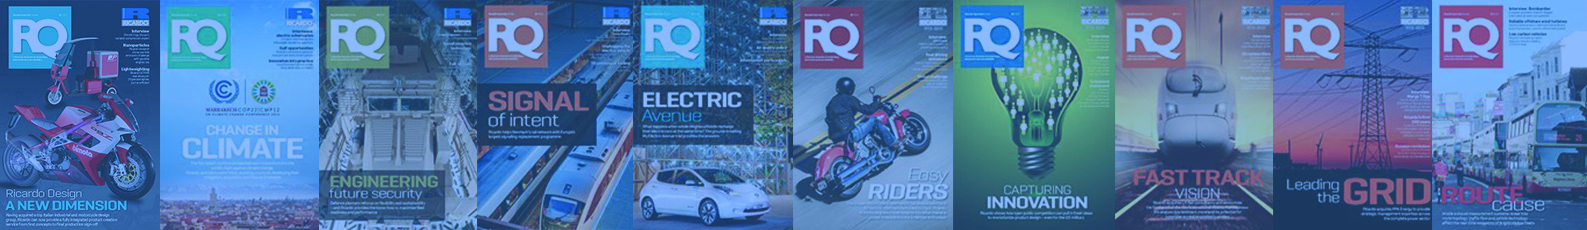 Ricardo Quarterly magazine - 2019